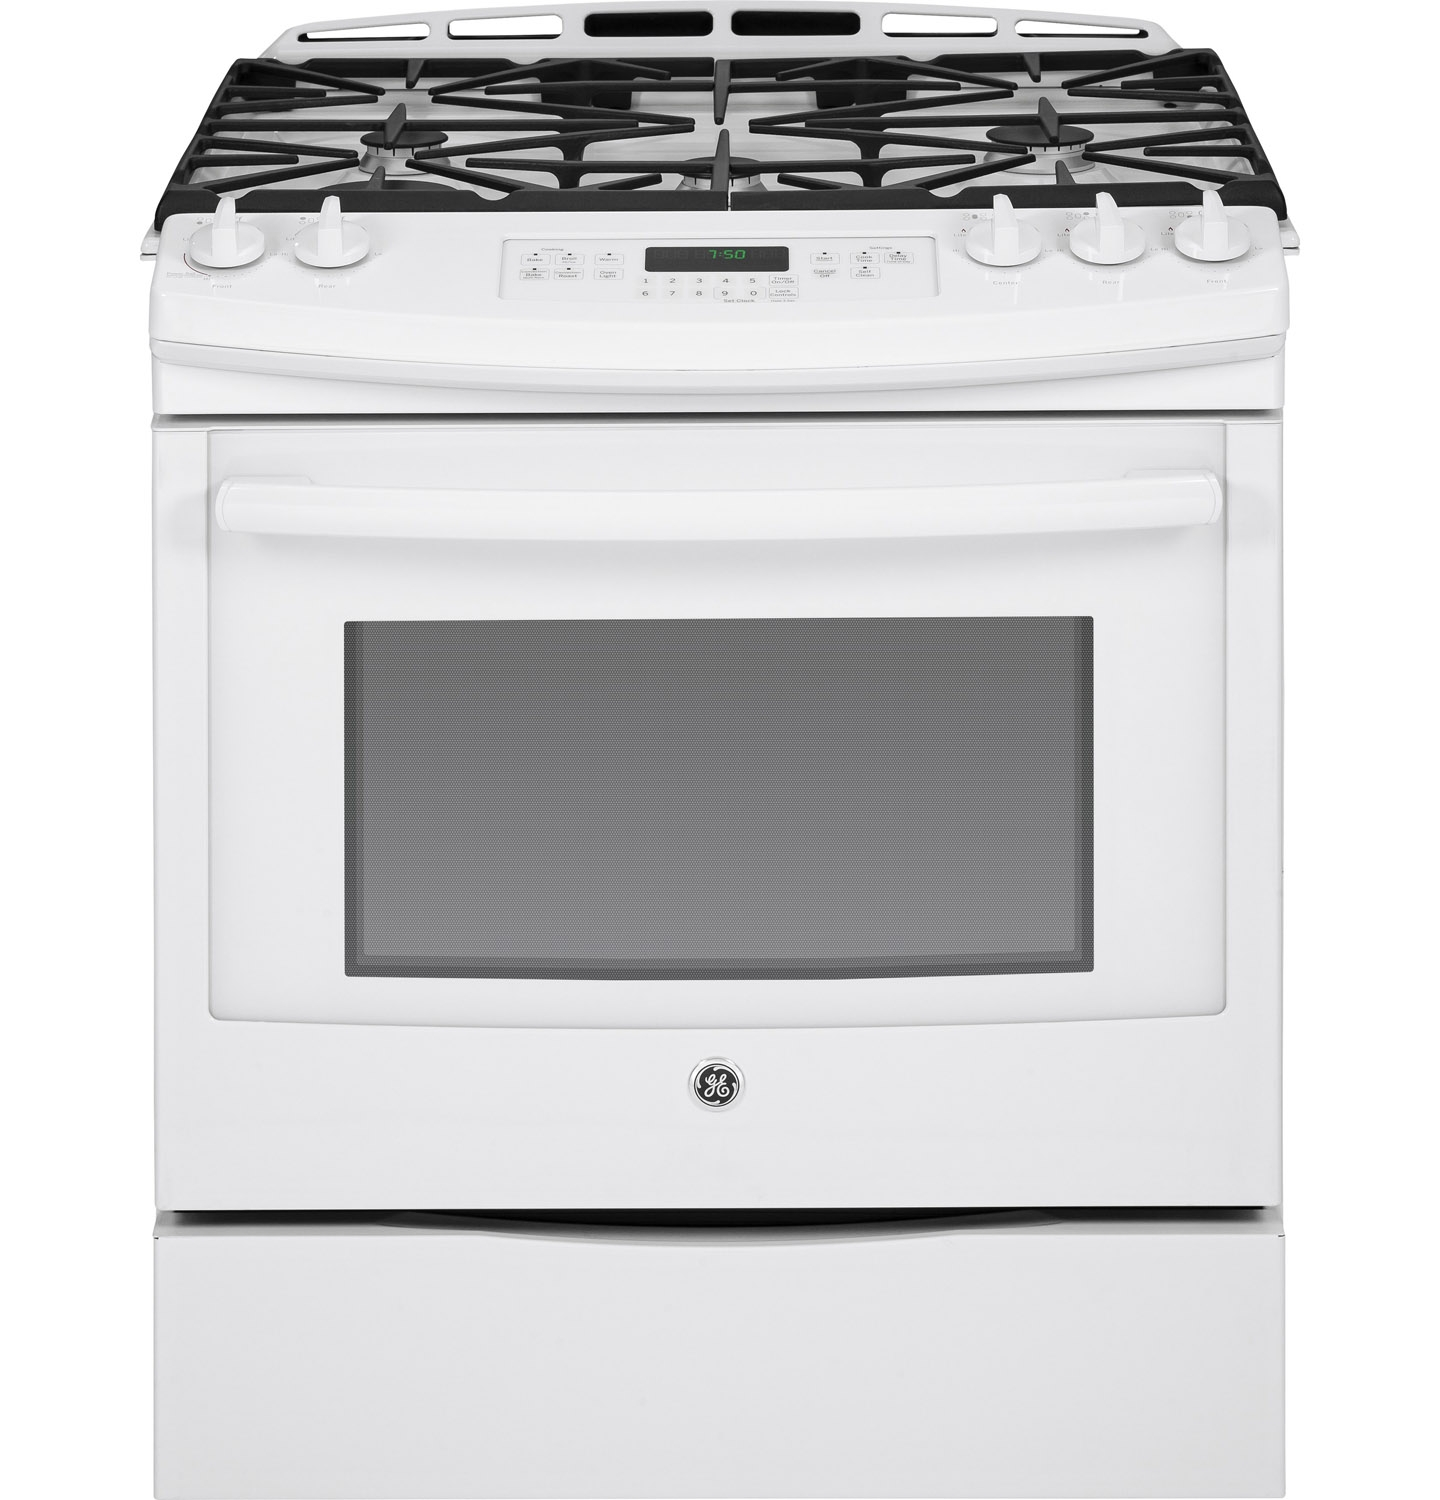 "GE 30"" White Slide-In Convection Gas Range - JGS750DEFWW"